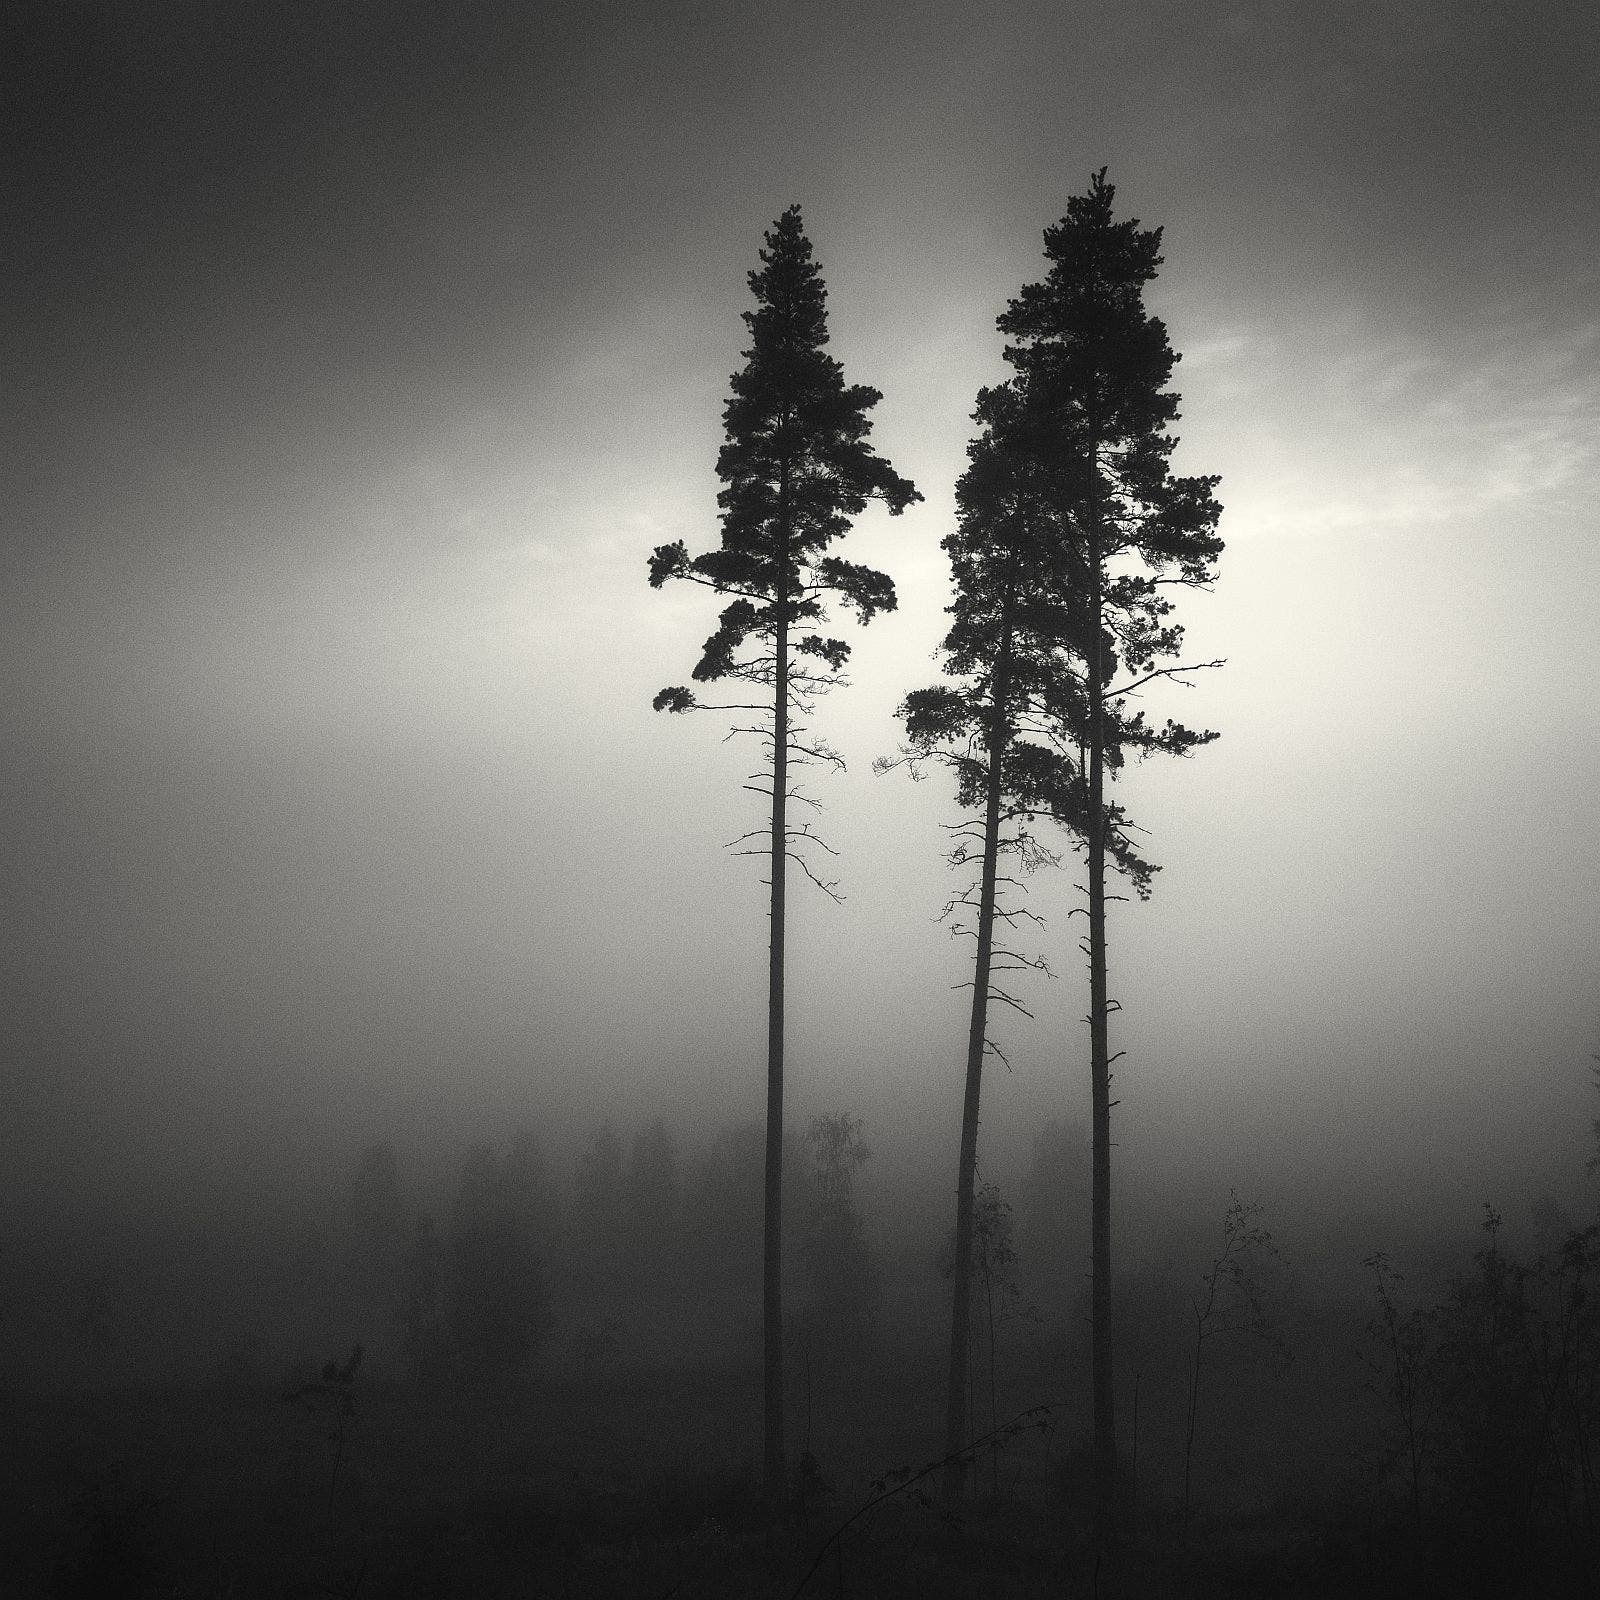 Pines in dense fog